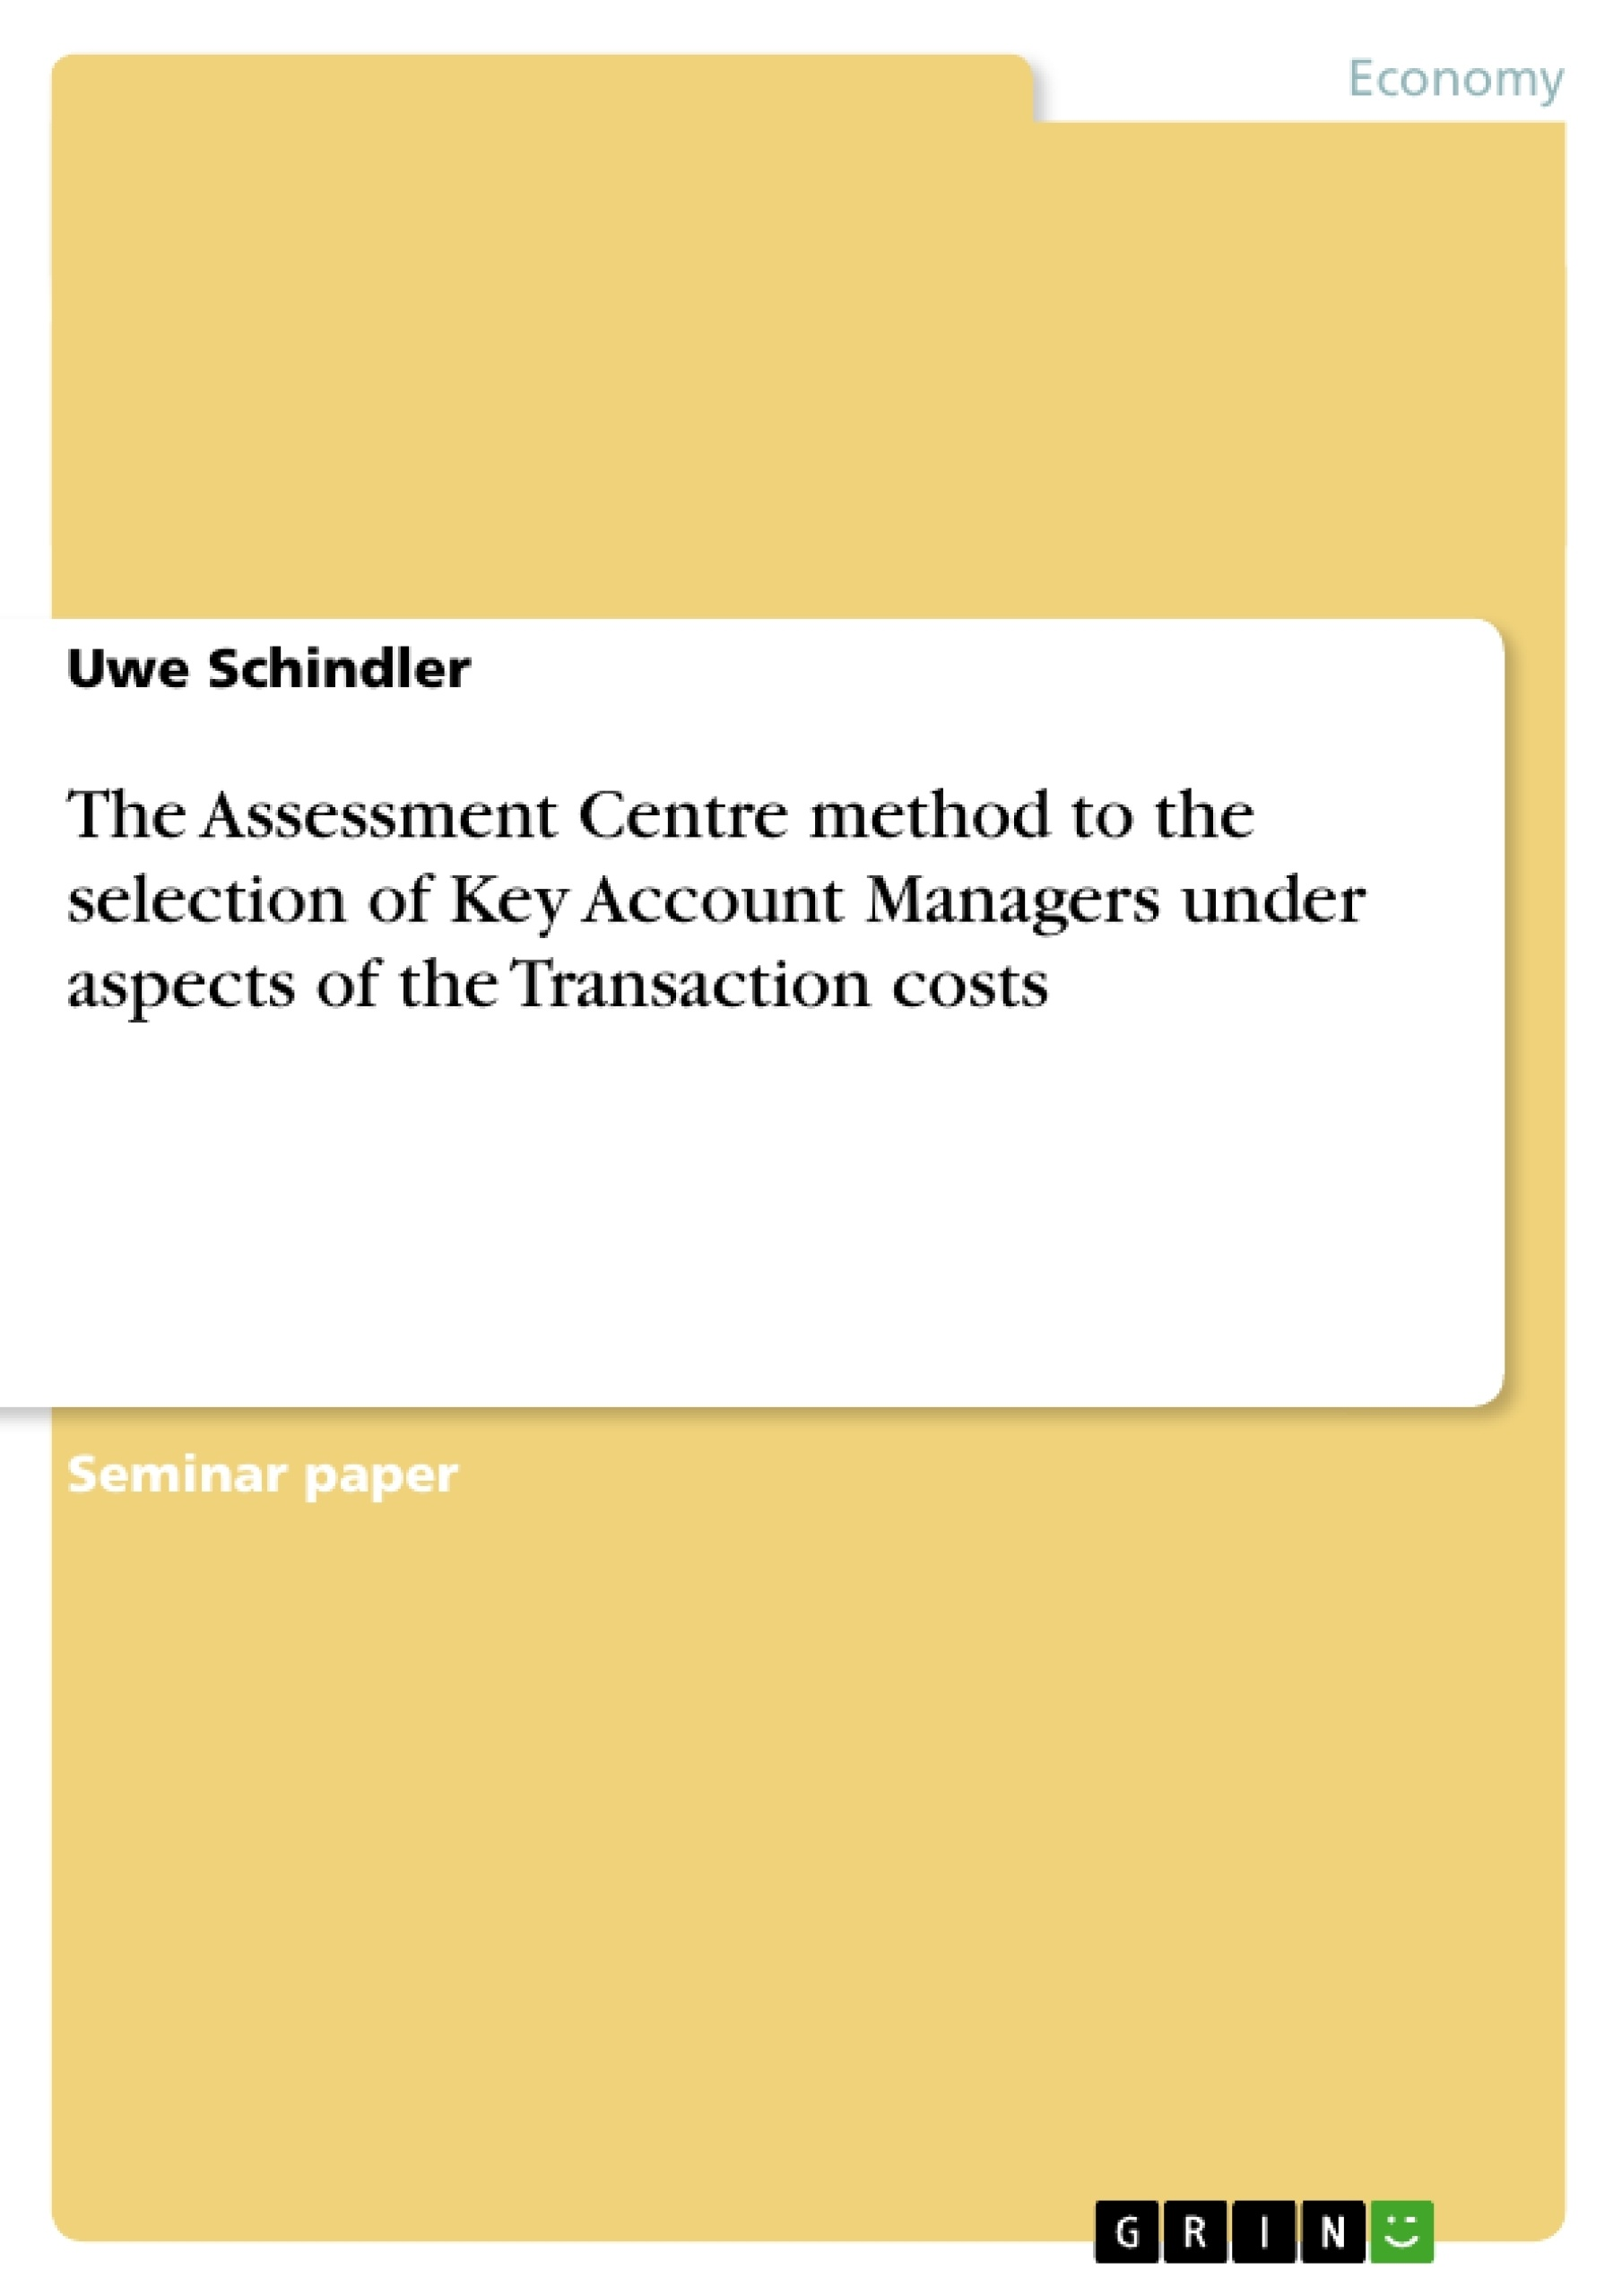 Title: The Assessment Centre method to the selection of Key Account Managers under aspects of the Transaction costs